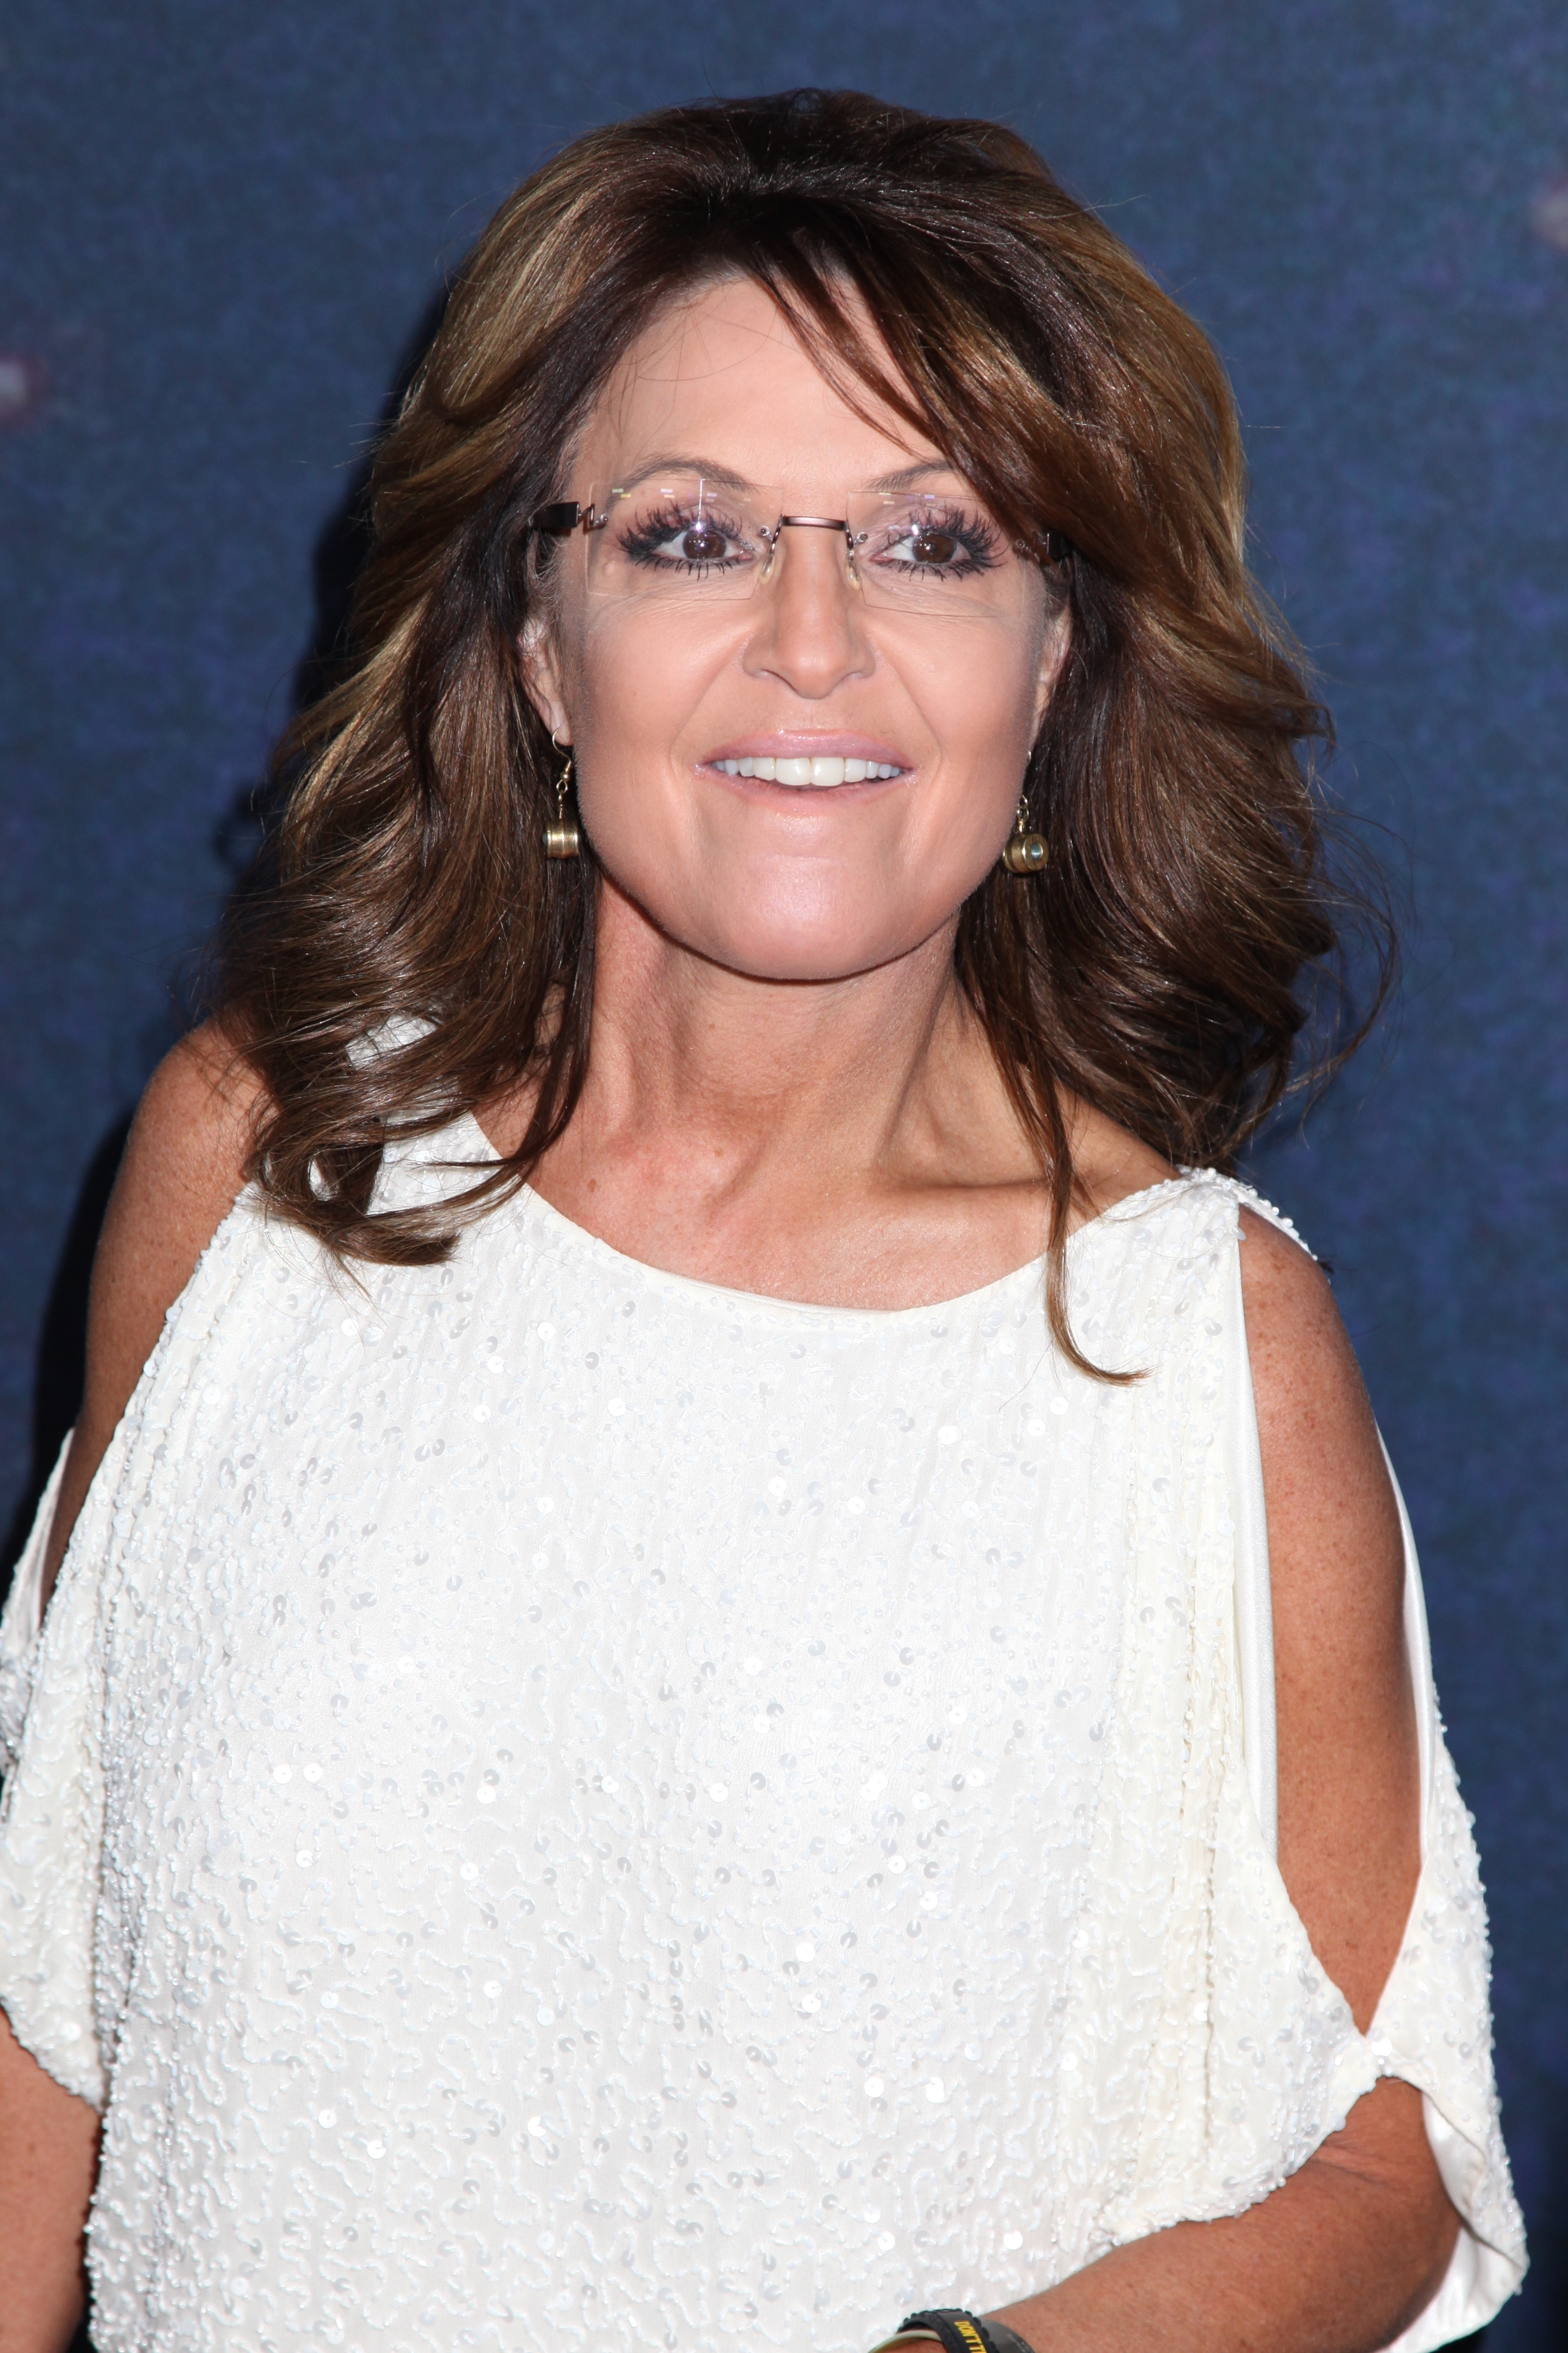 Sarah Palin attends the SNL 40th Anniversary Special in New York on Feb. 15, 2015.